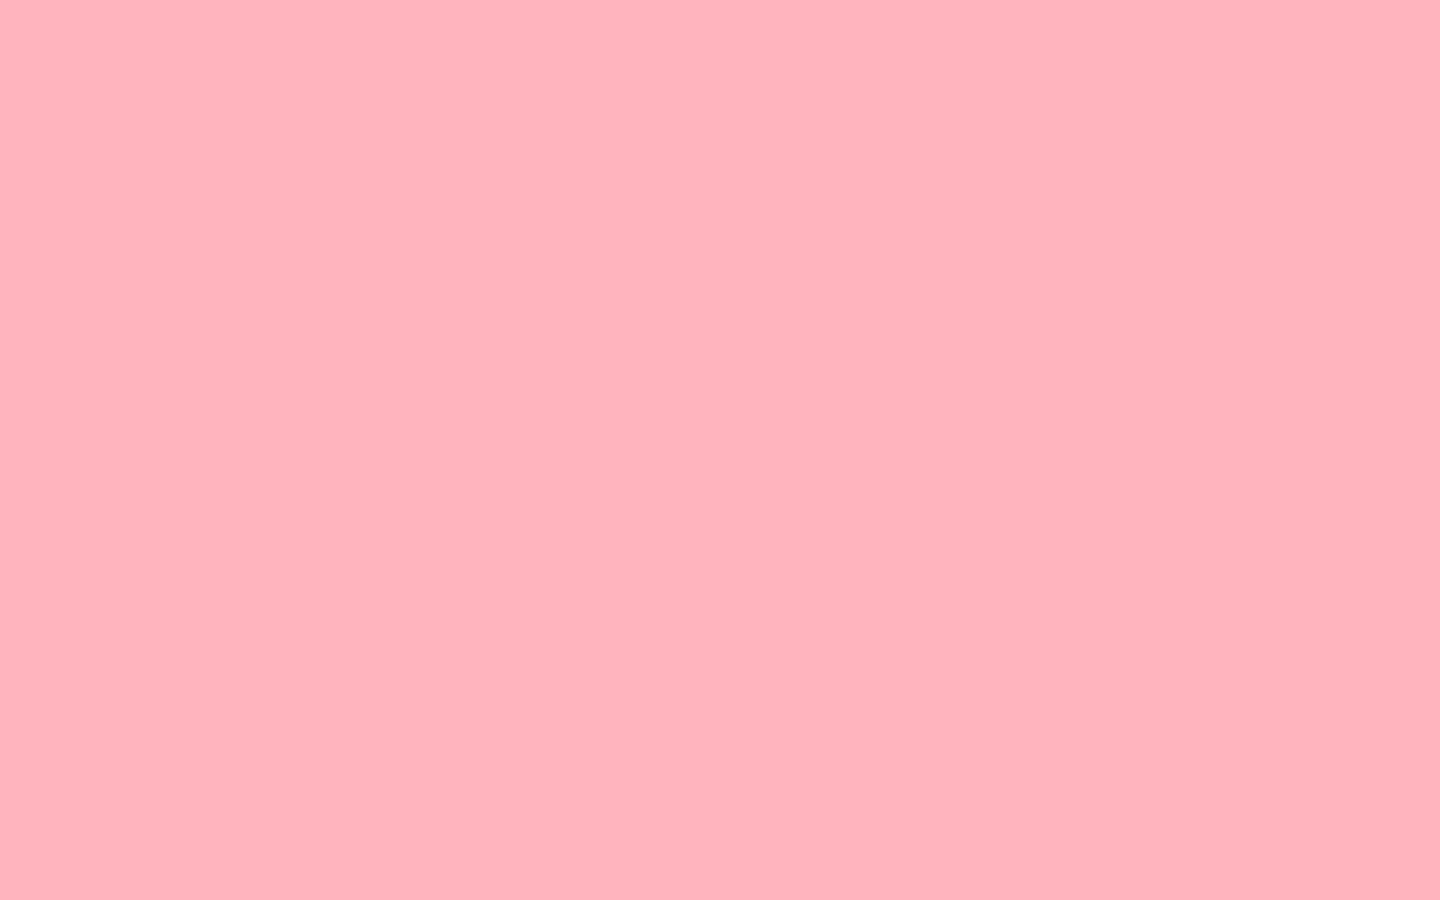 light pink backgrounds - photo #47